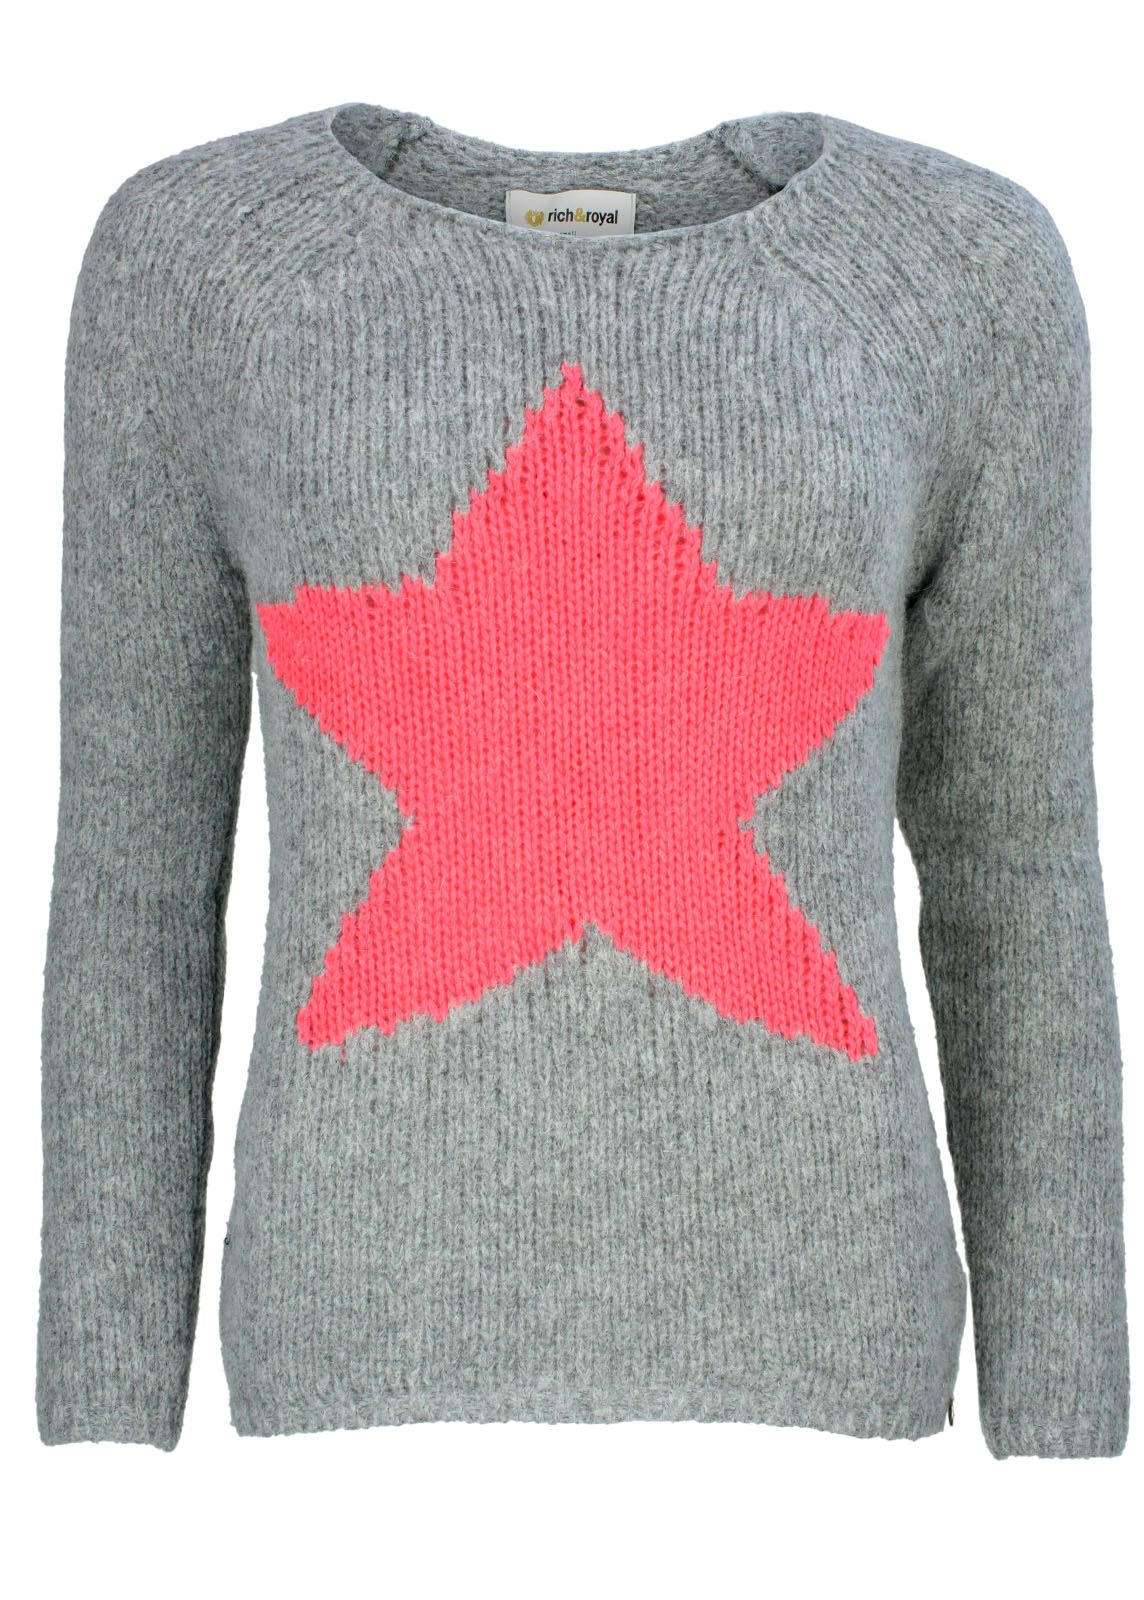 premium selection a8a66 374c9 Pullover mit Stern